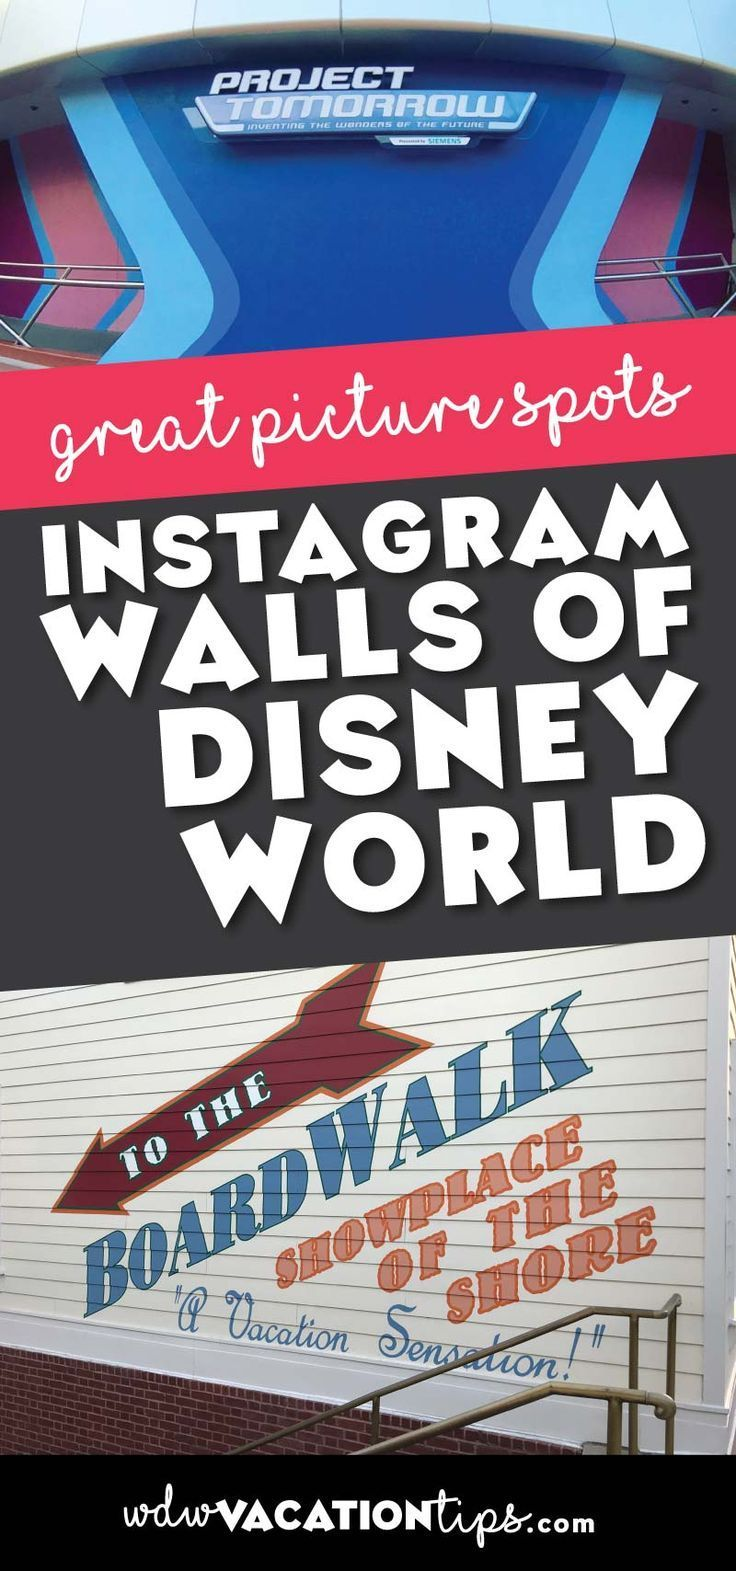 If you haven't been on Instagramlately, you may have missed out on some of the famous walls of Disney World. These are the hot spots to snap your picture at Disney World.